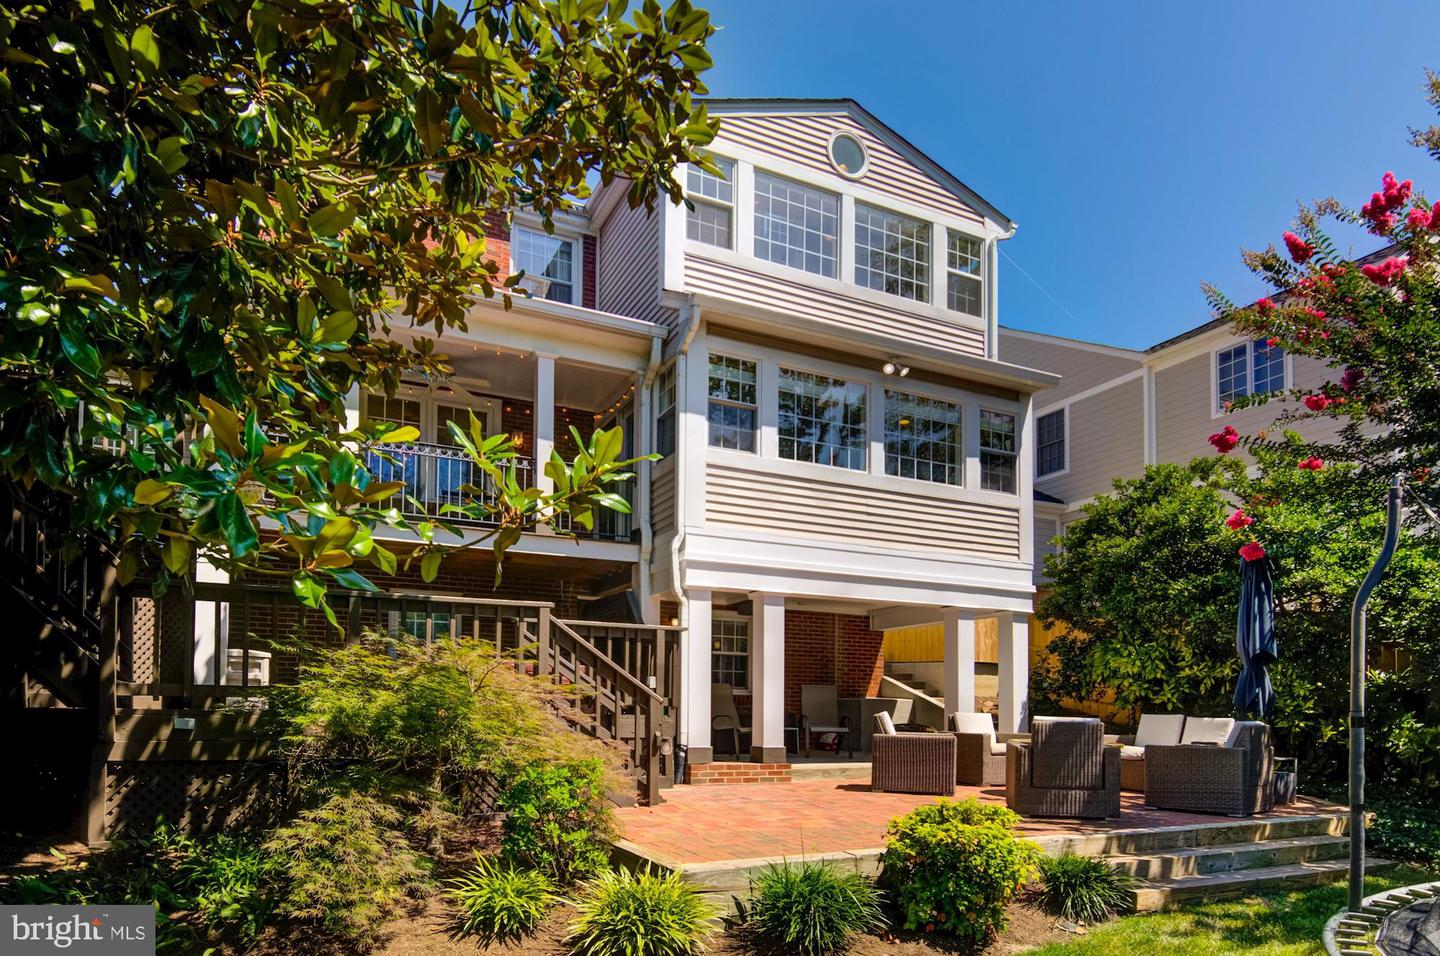 Single Family for Sale at 5530 11th St N Arlington, Virginia 22205 United States